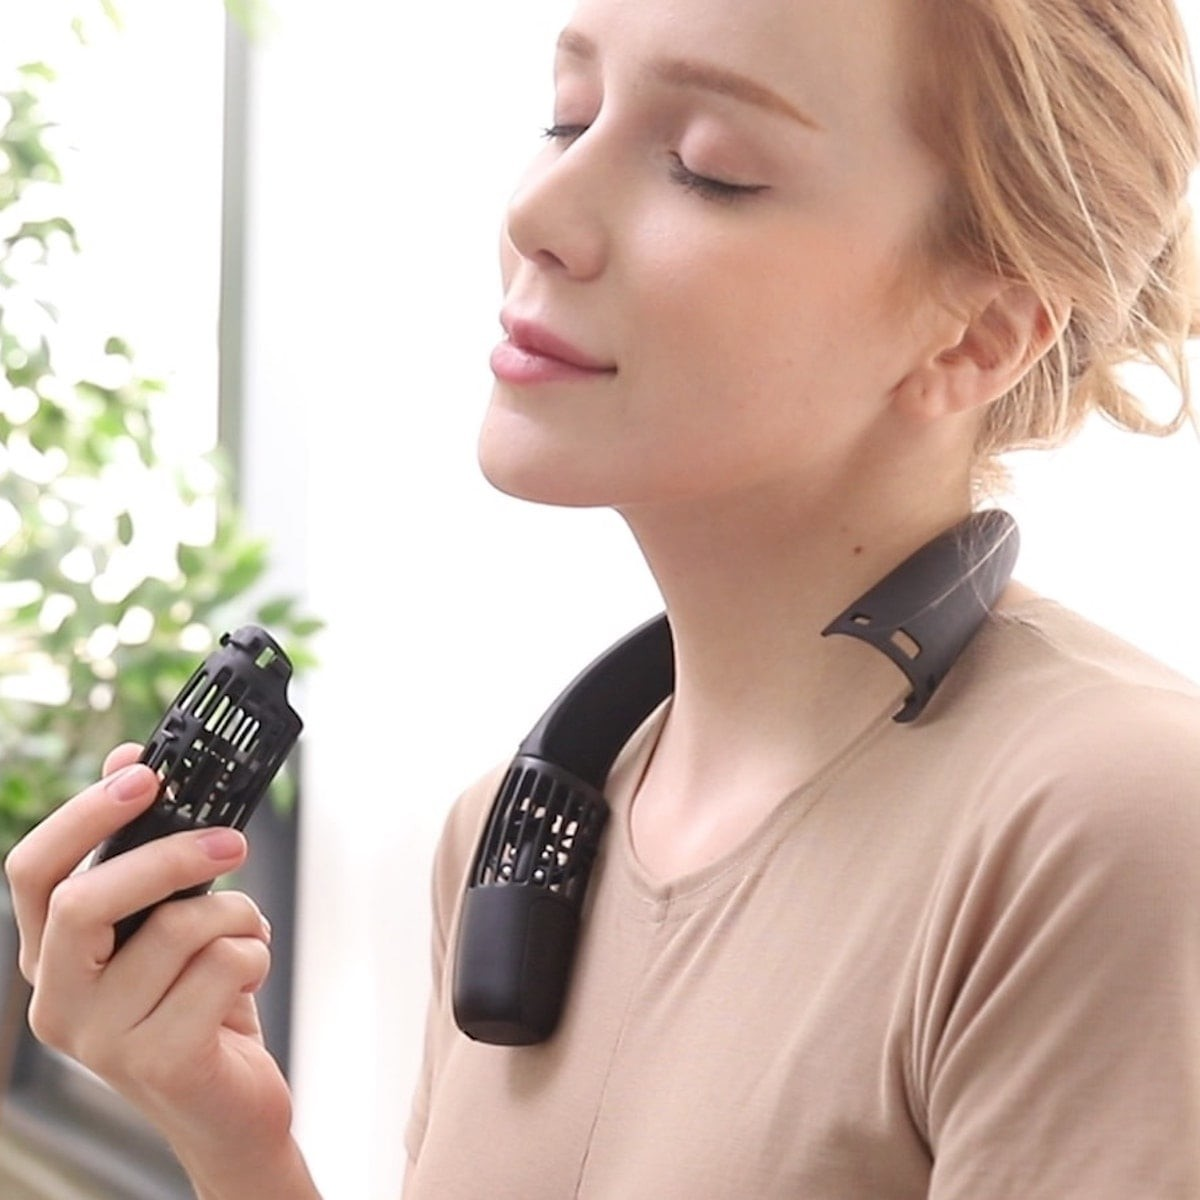 This neck fan keeps you cool when it's hot outside thumbnail